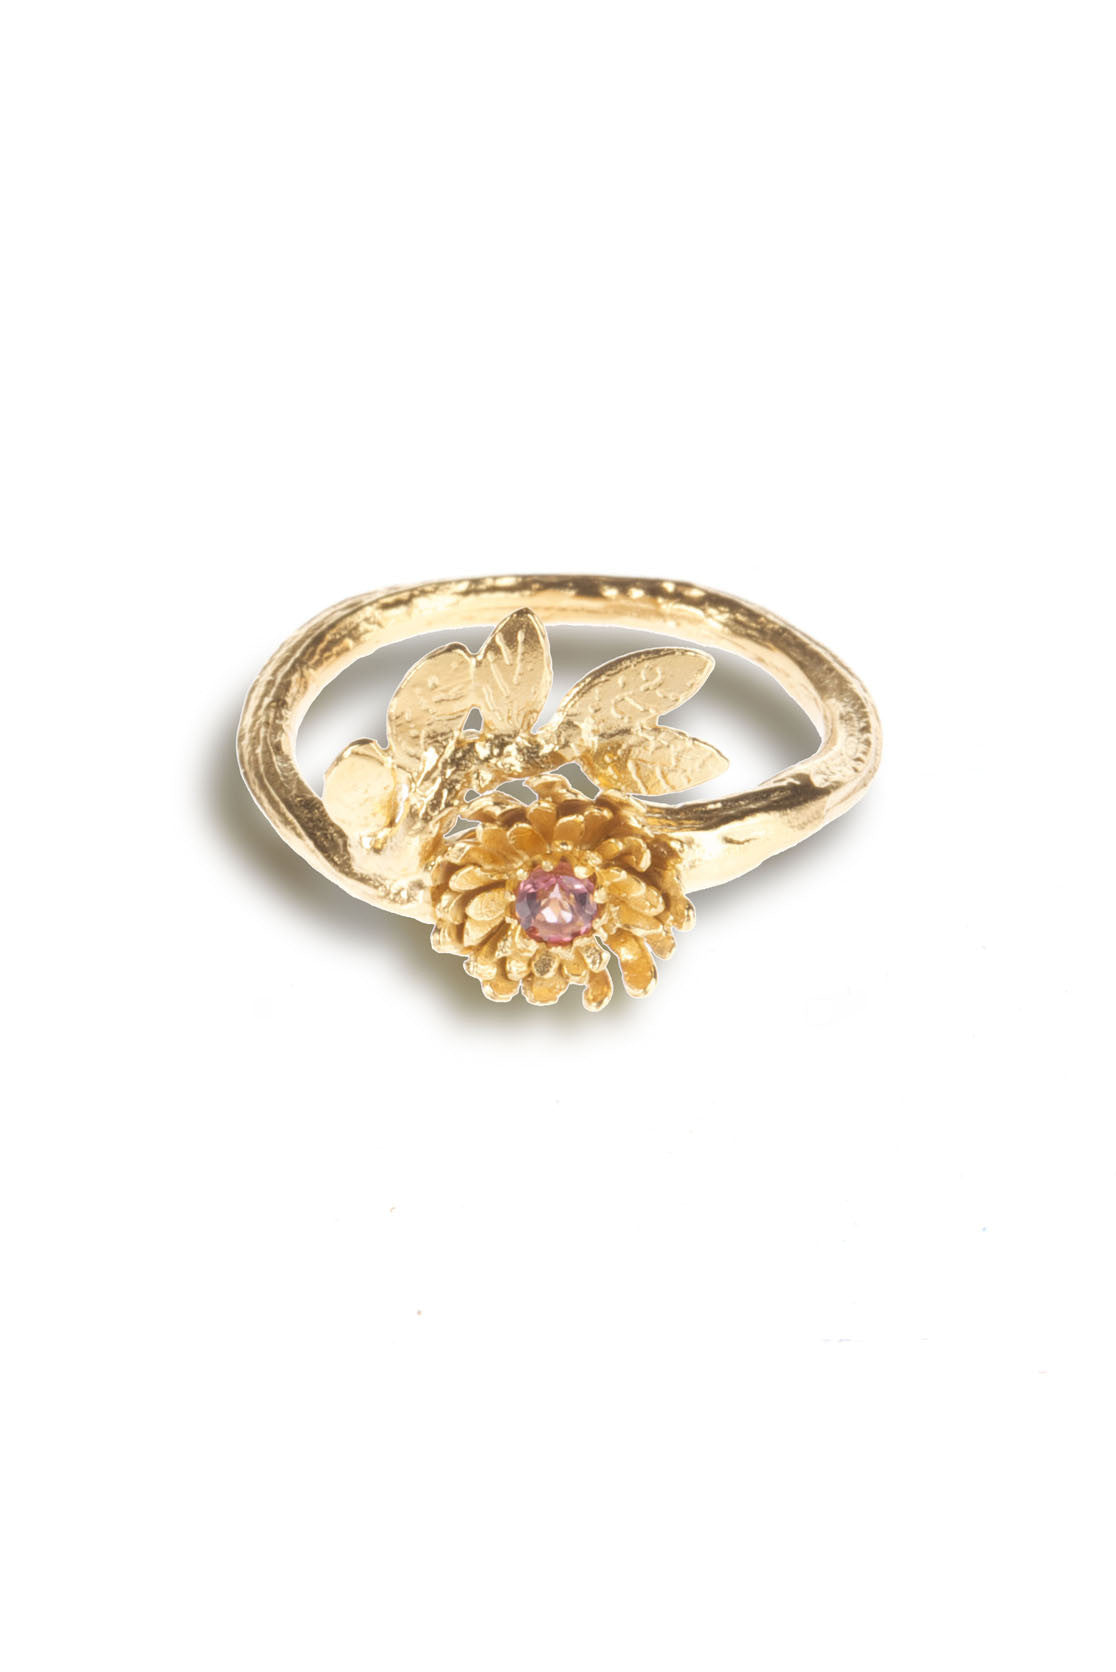 22ct Gold Vermeil with pink tourmaline